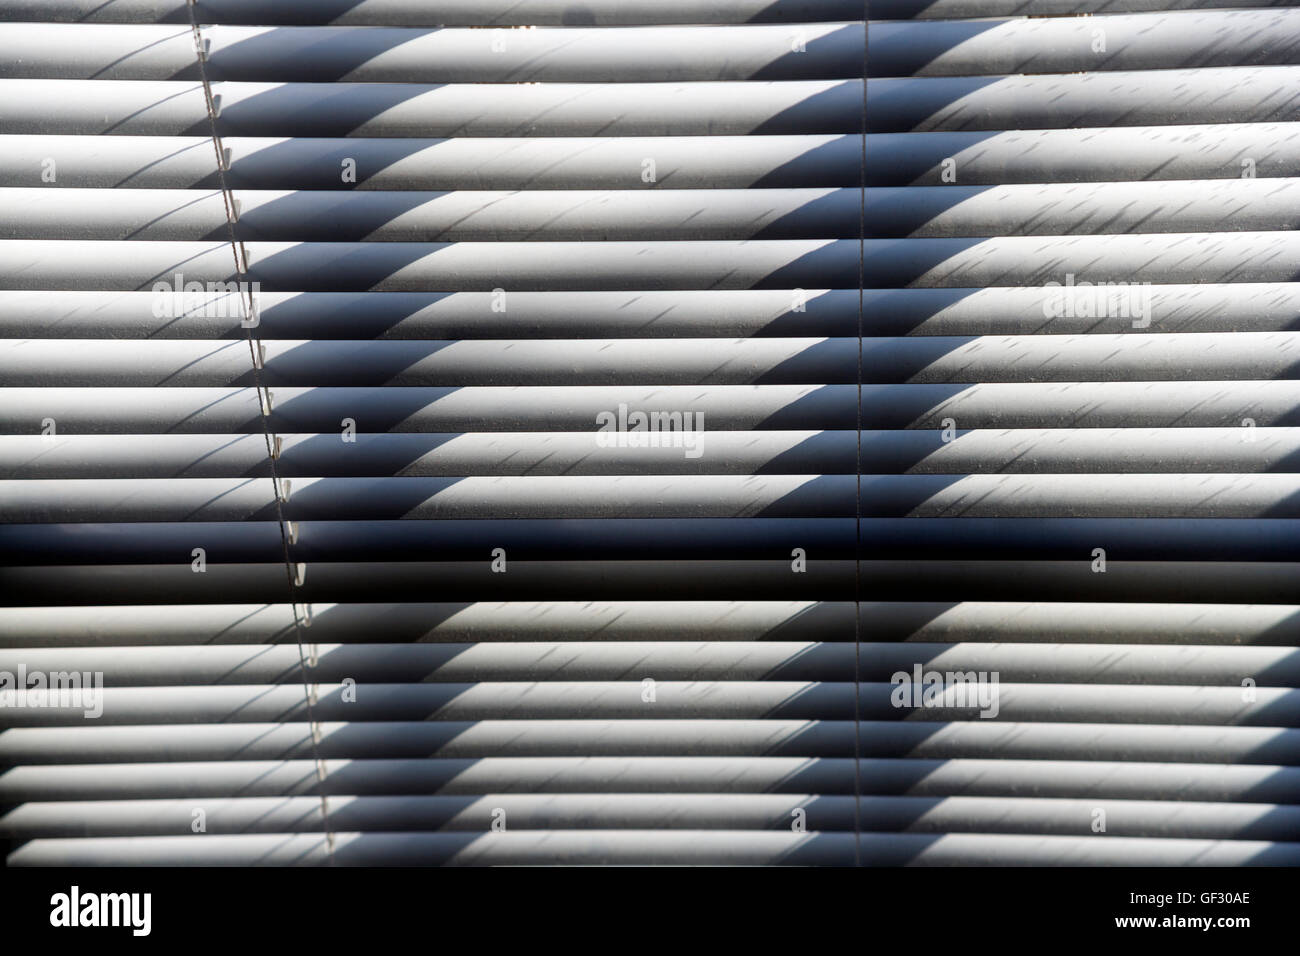 Abstract photo of sunlight on venetian blinds - Stock Image